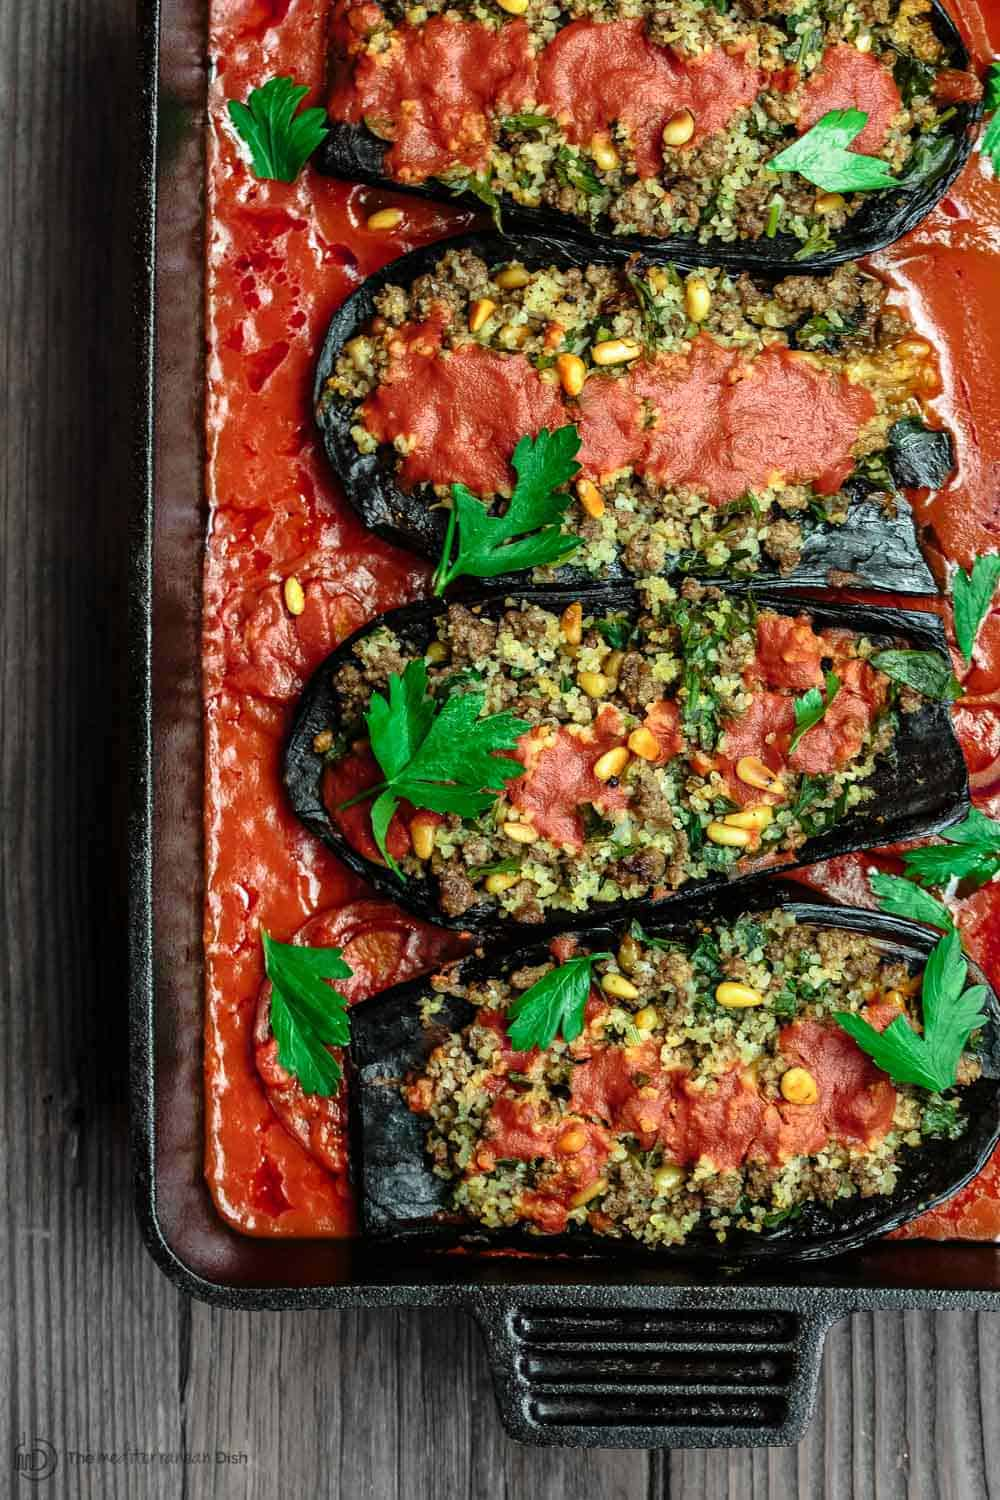 Stuffed Eggplant With Ground Beef The Mediterranean Dish Eggplant Recipes Mediterranean Dishes Mediterranean Recipes